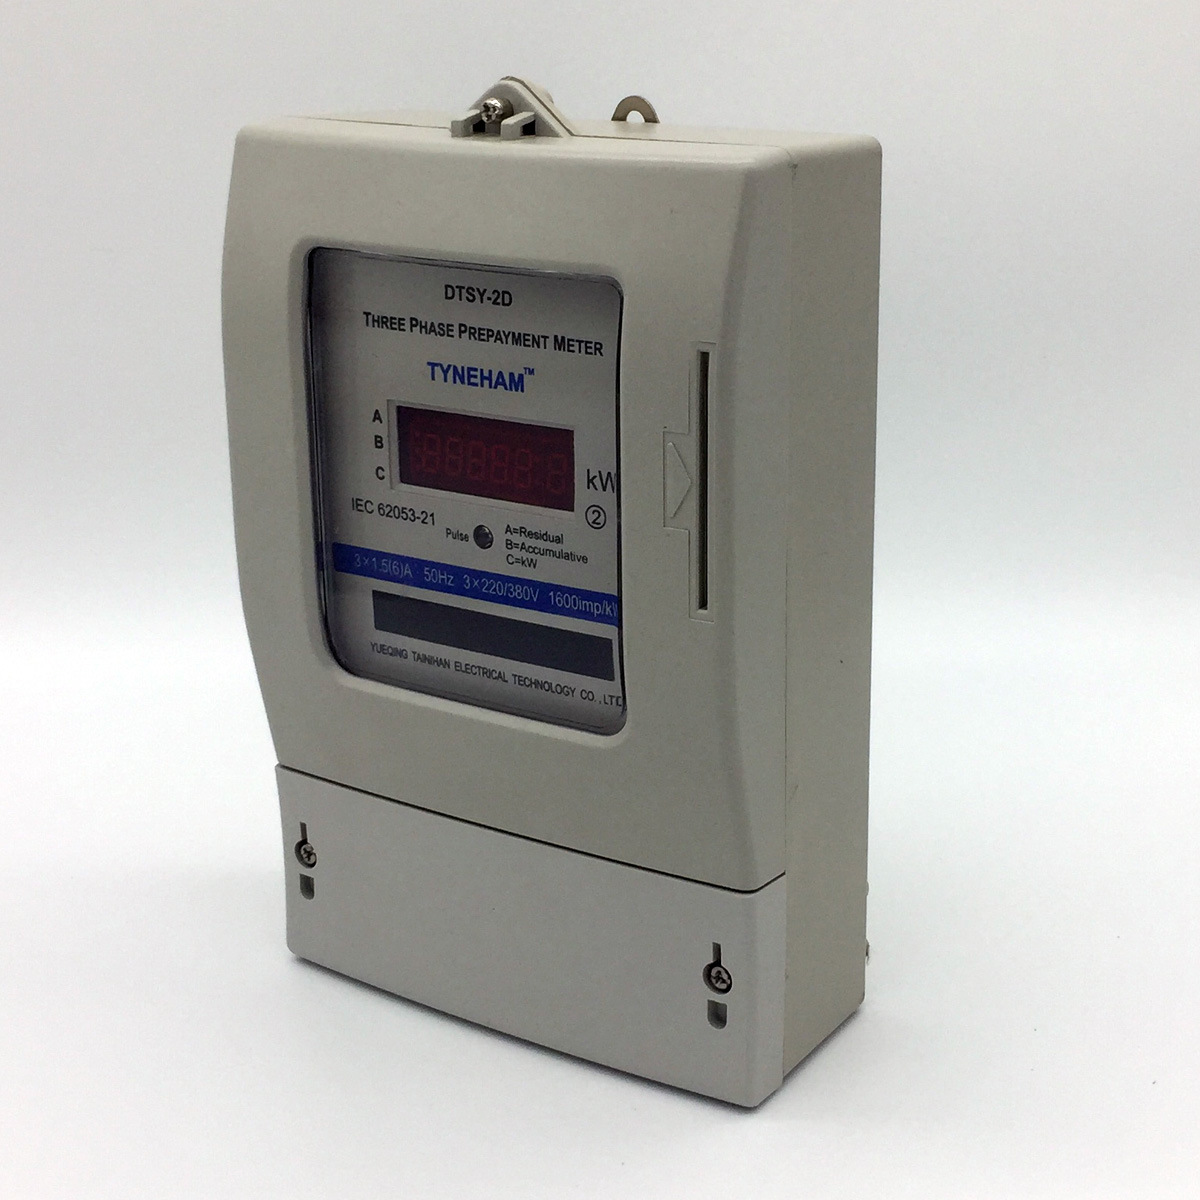 Dtsy-2D Series Three Phase Electronic Prepaid Energy Meter